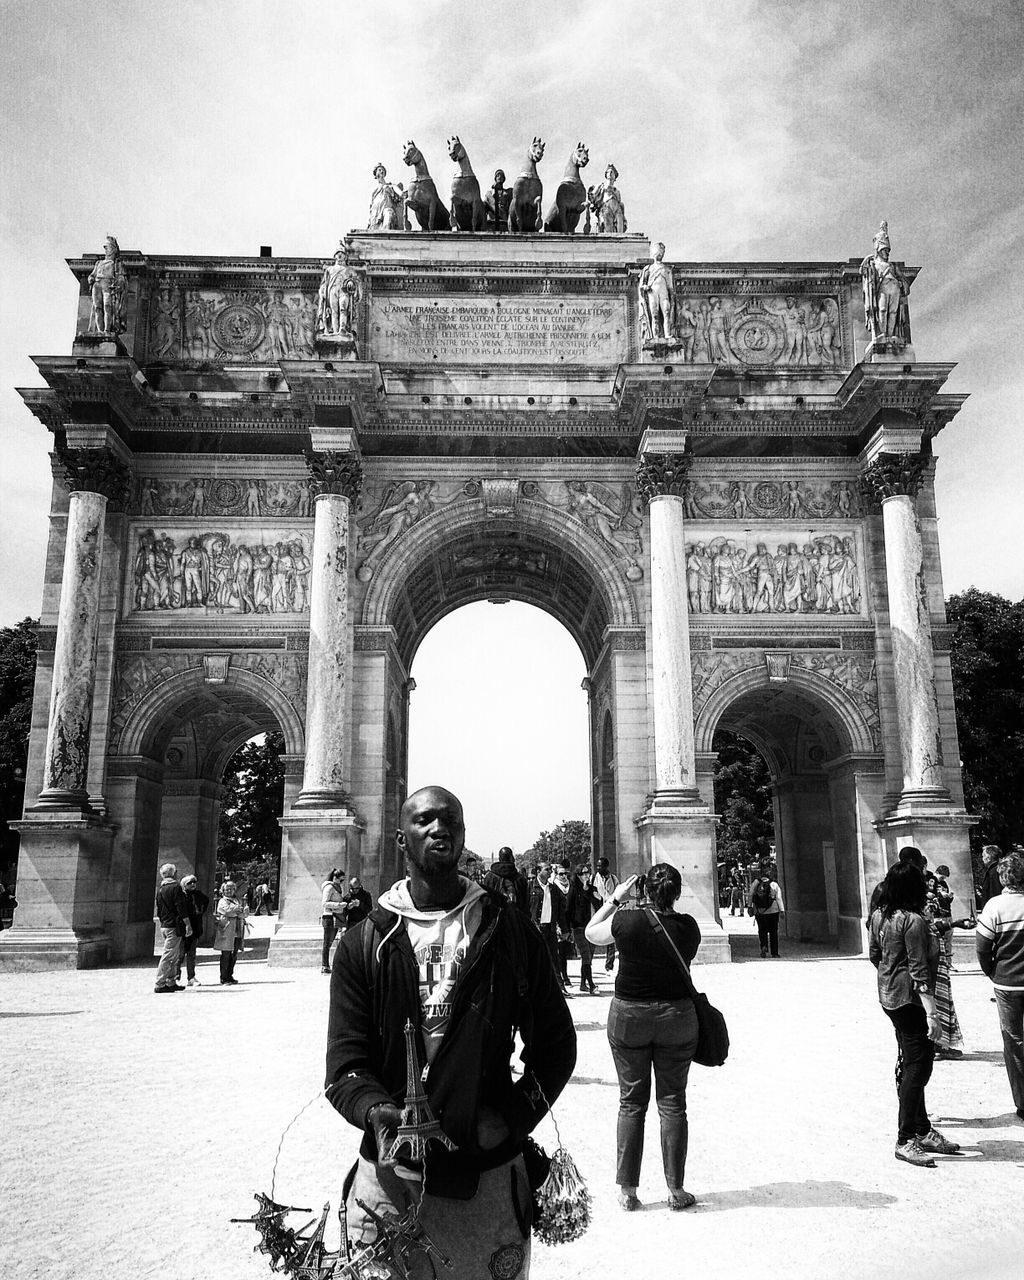 architecture, triumphal arch, history, built structure, tourism, arch, statue, travel destinations, gate, sculpture, building exterior, travel, sky, real people, outdoors, monument, large group of people, low angle view, women, day, men, city, adult, people, adults only